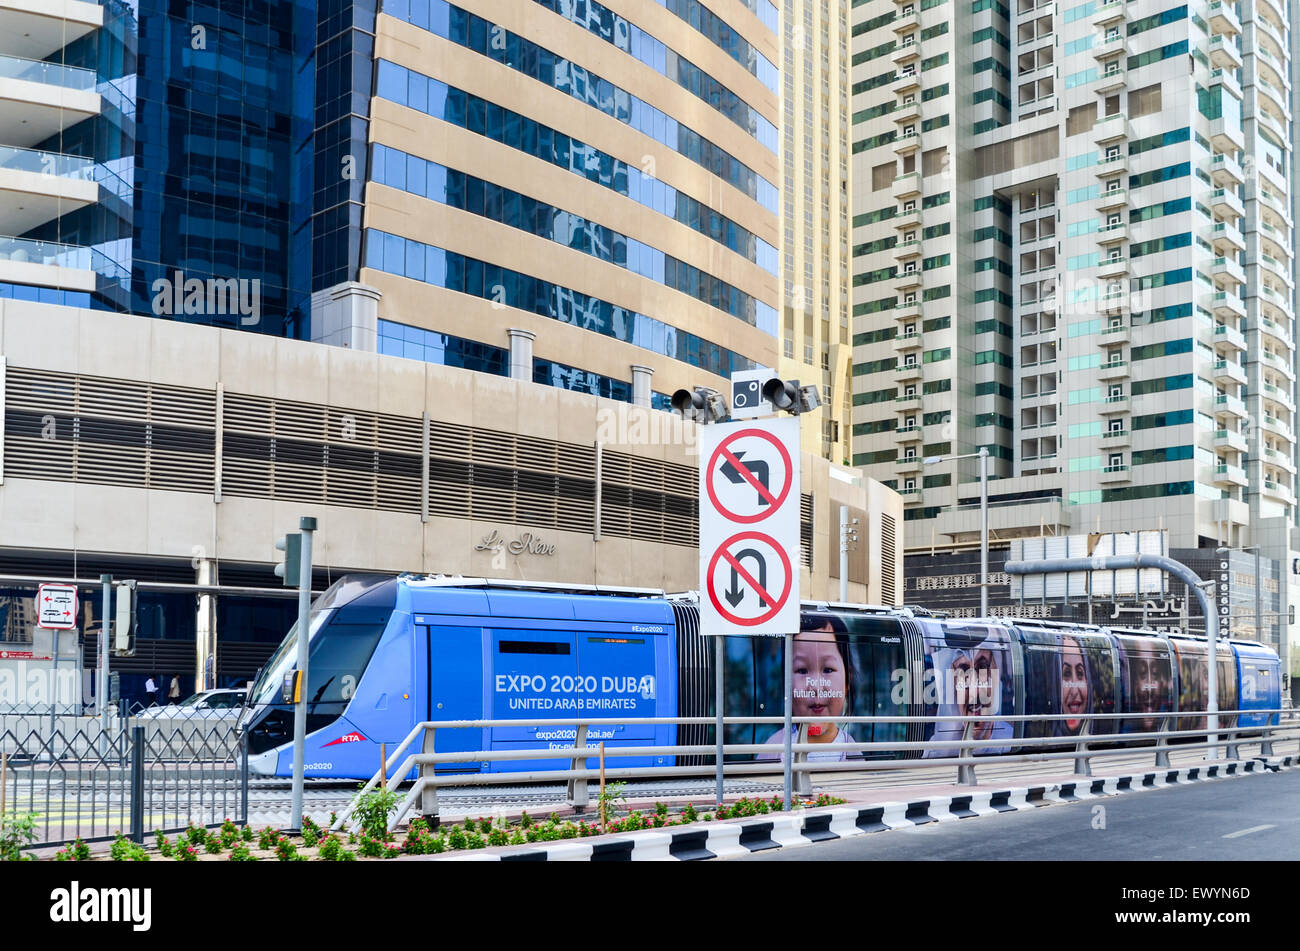 Tramway line of Dubai, UAE, with advertising of EXPO 2020 Stock Photo